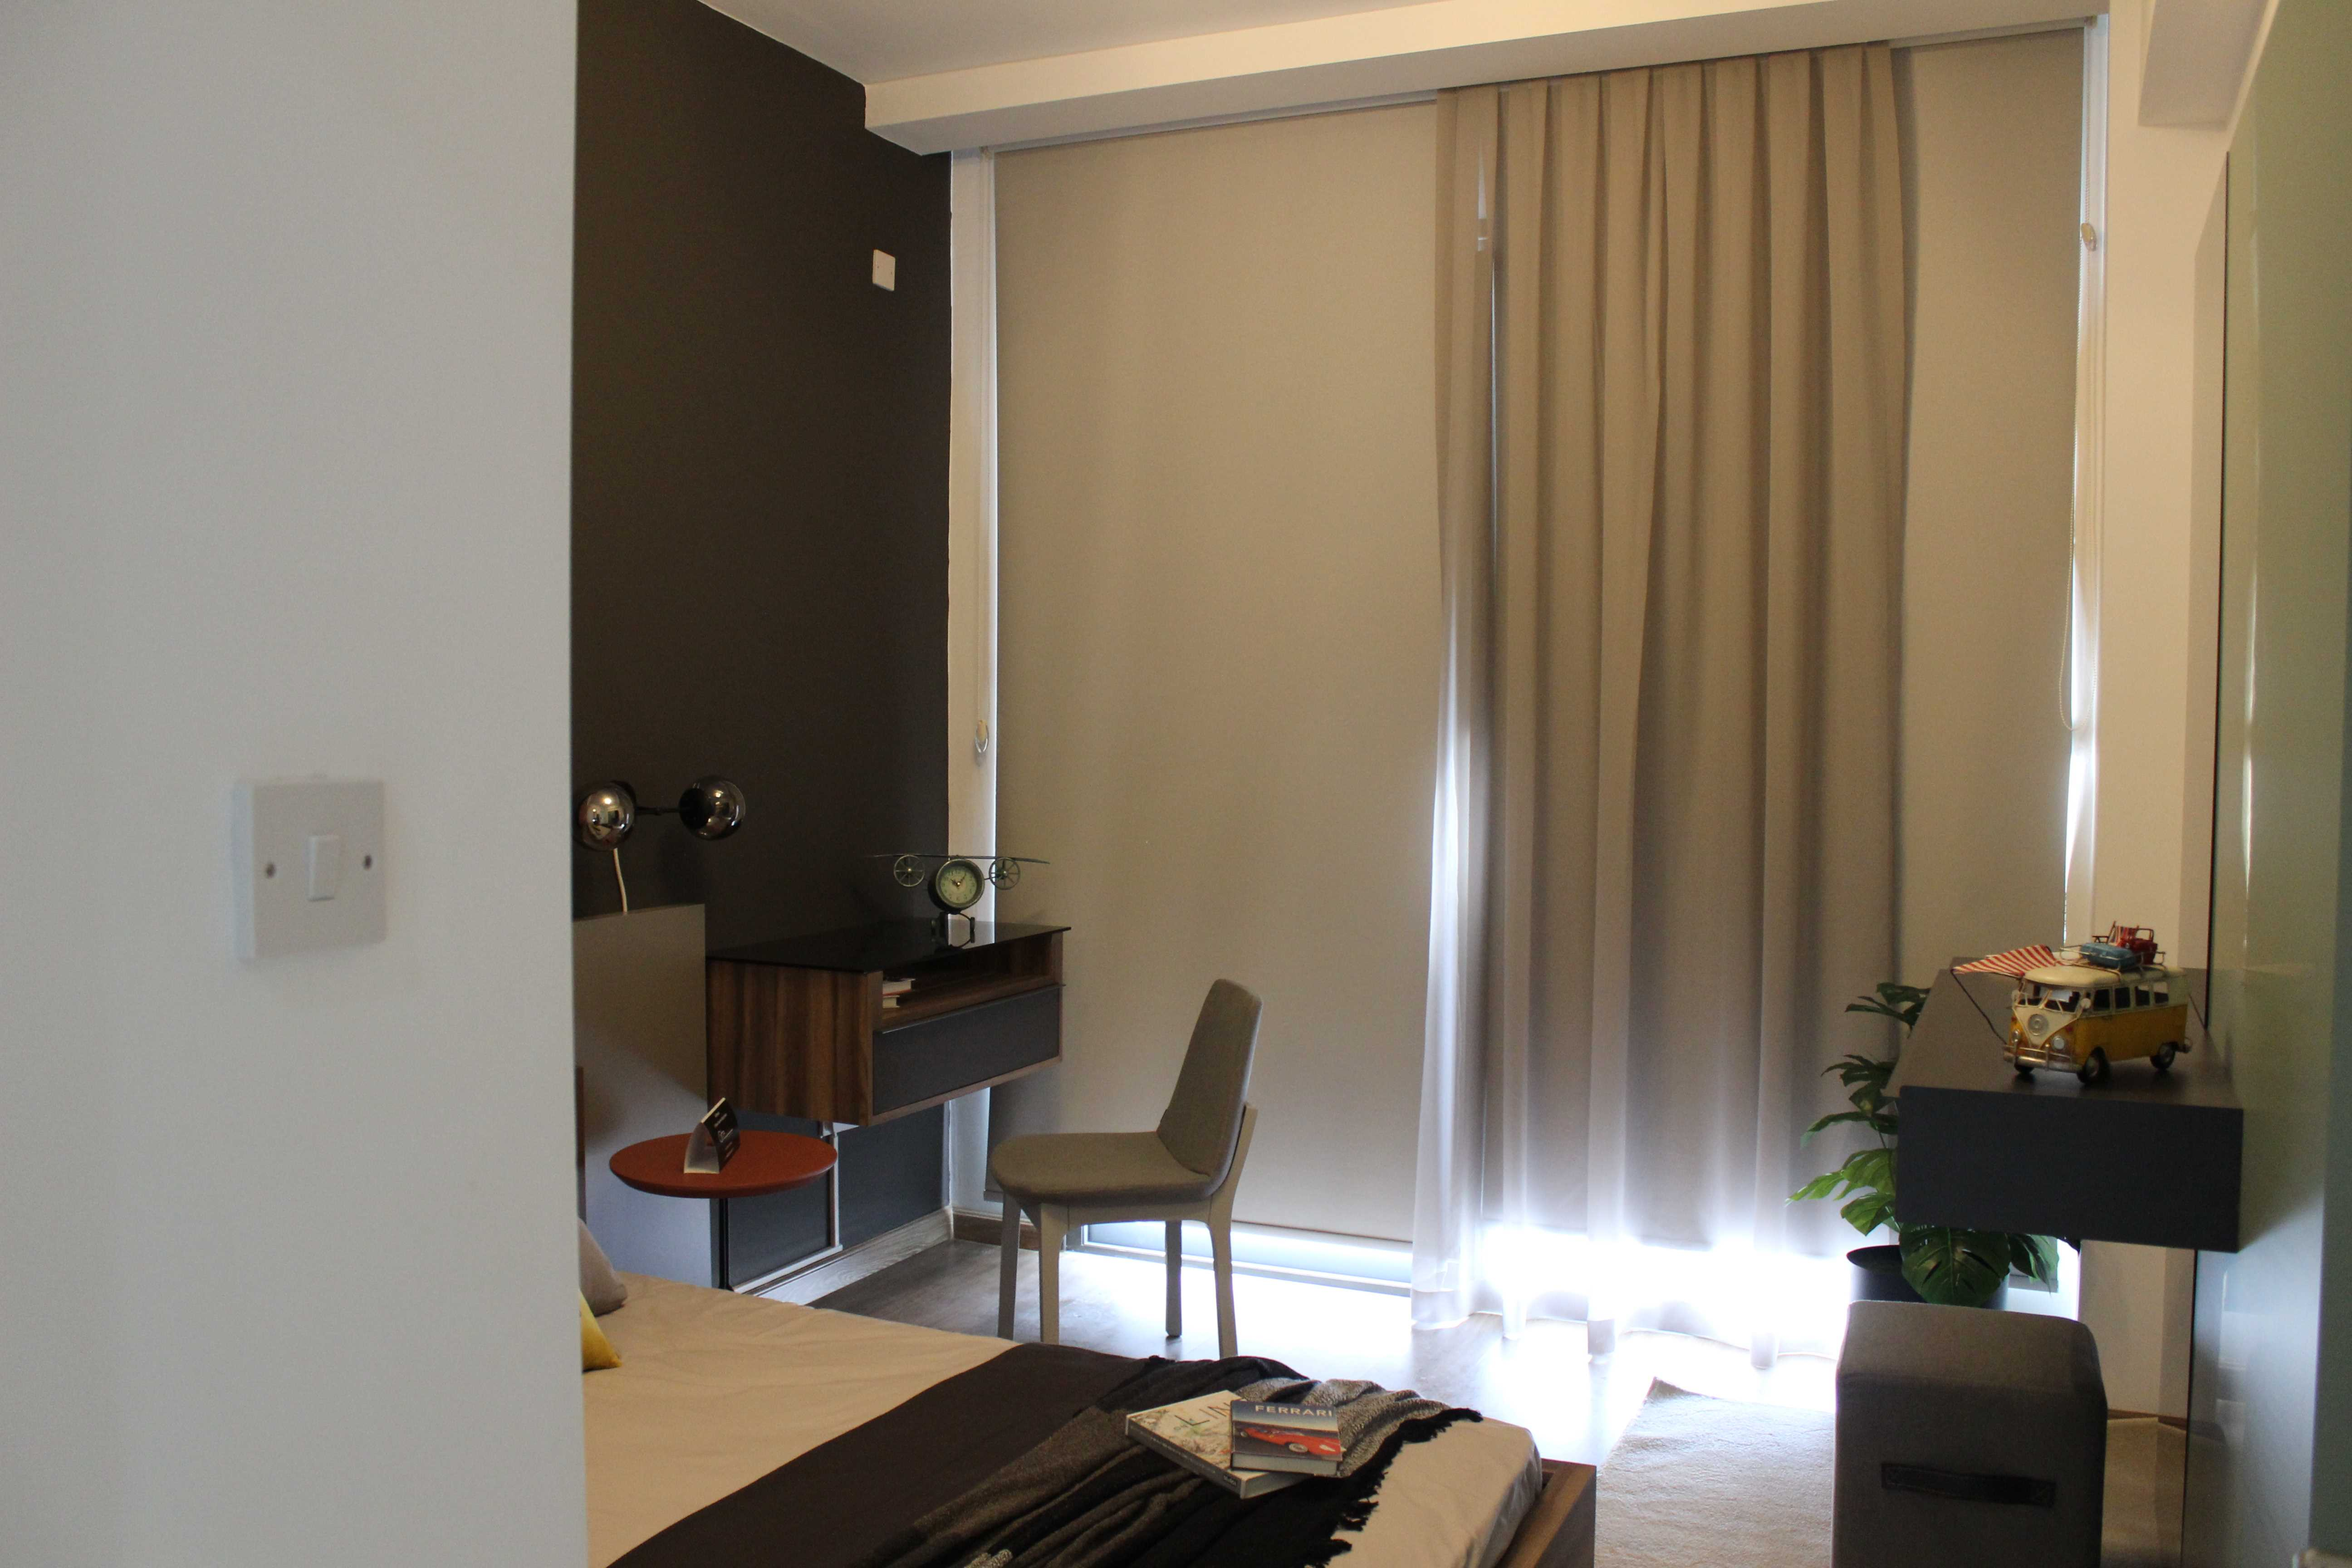 LUXURIOUS-TWO-BEDROOM-APARTMENTS-IN-HAMITKOY-HM03B